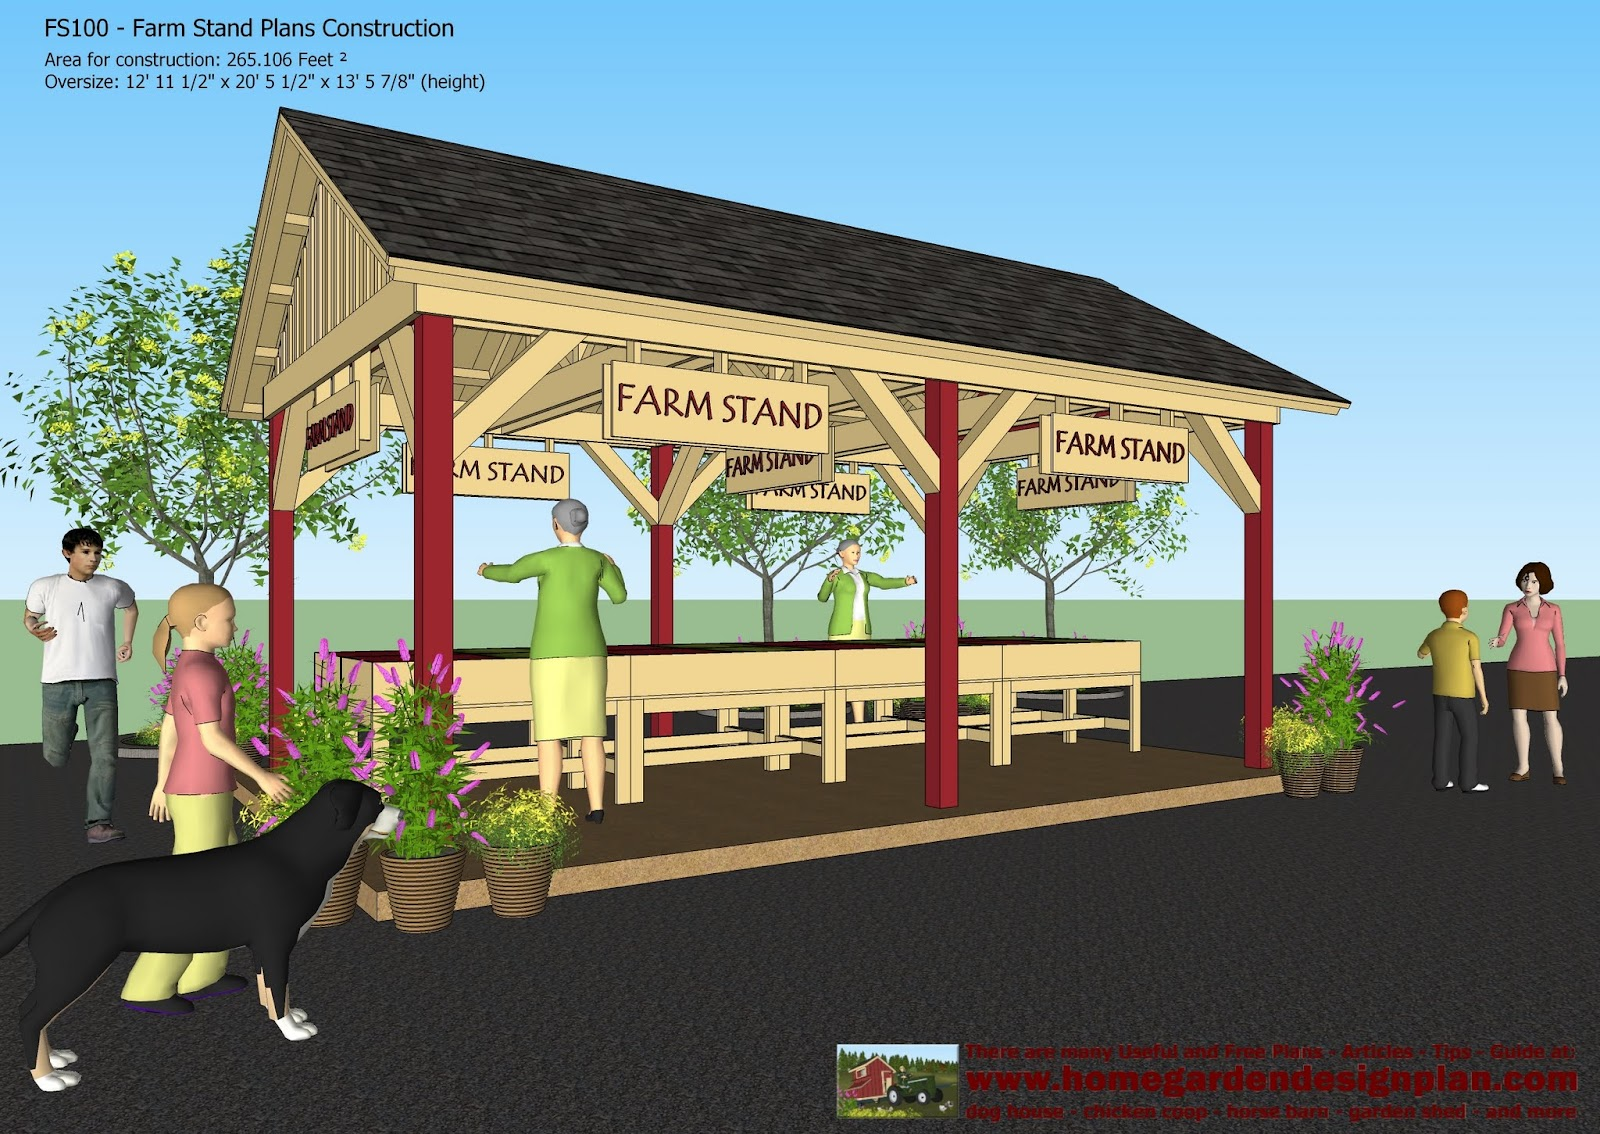 Home garden plans fs100 farm stand plans construction for Farm table plans drawings